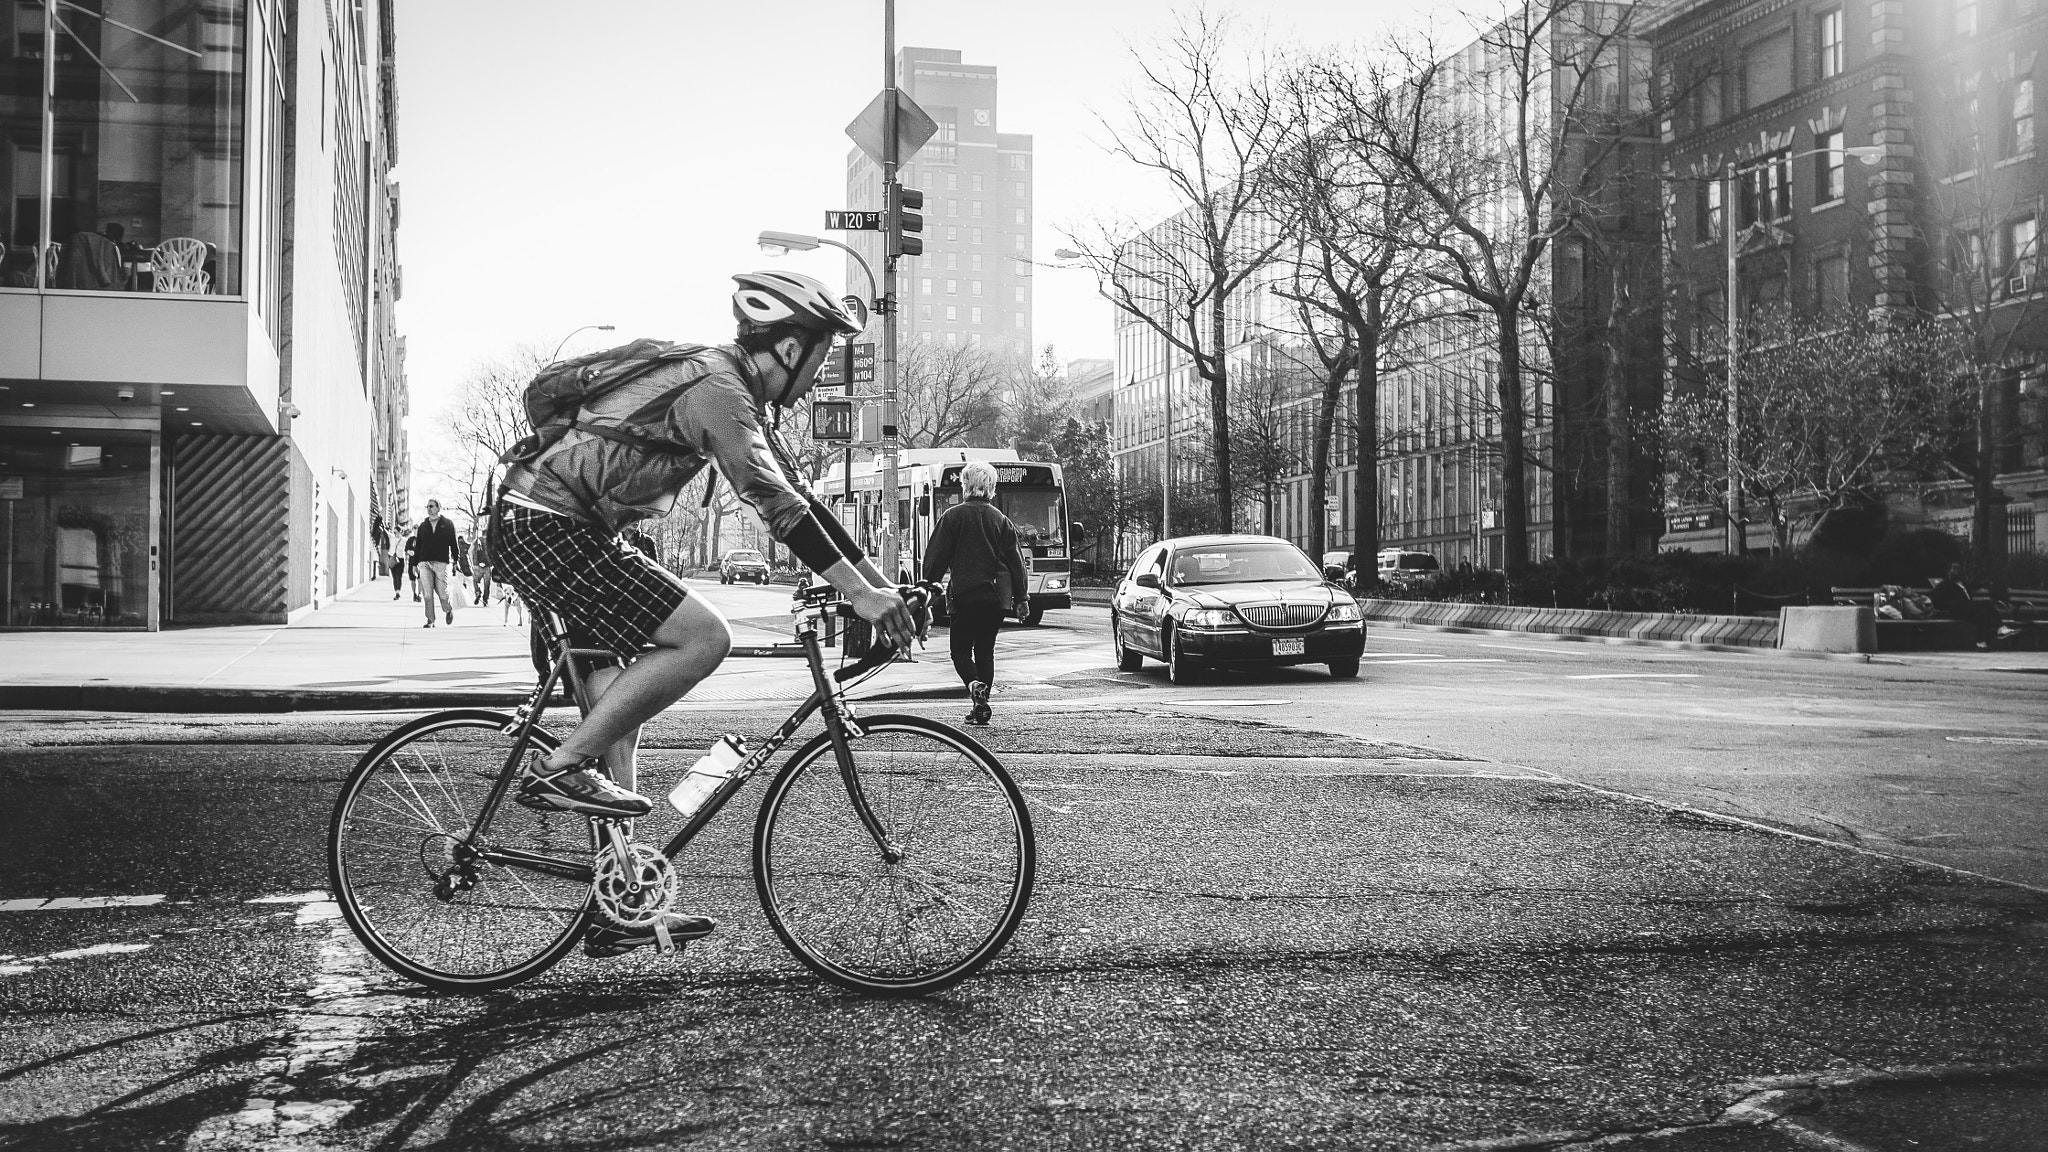 Photograph The Cyclist by Napier Lopez on 500px